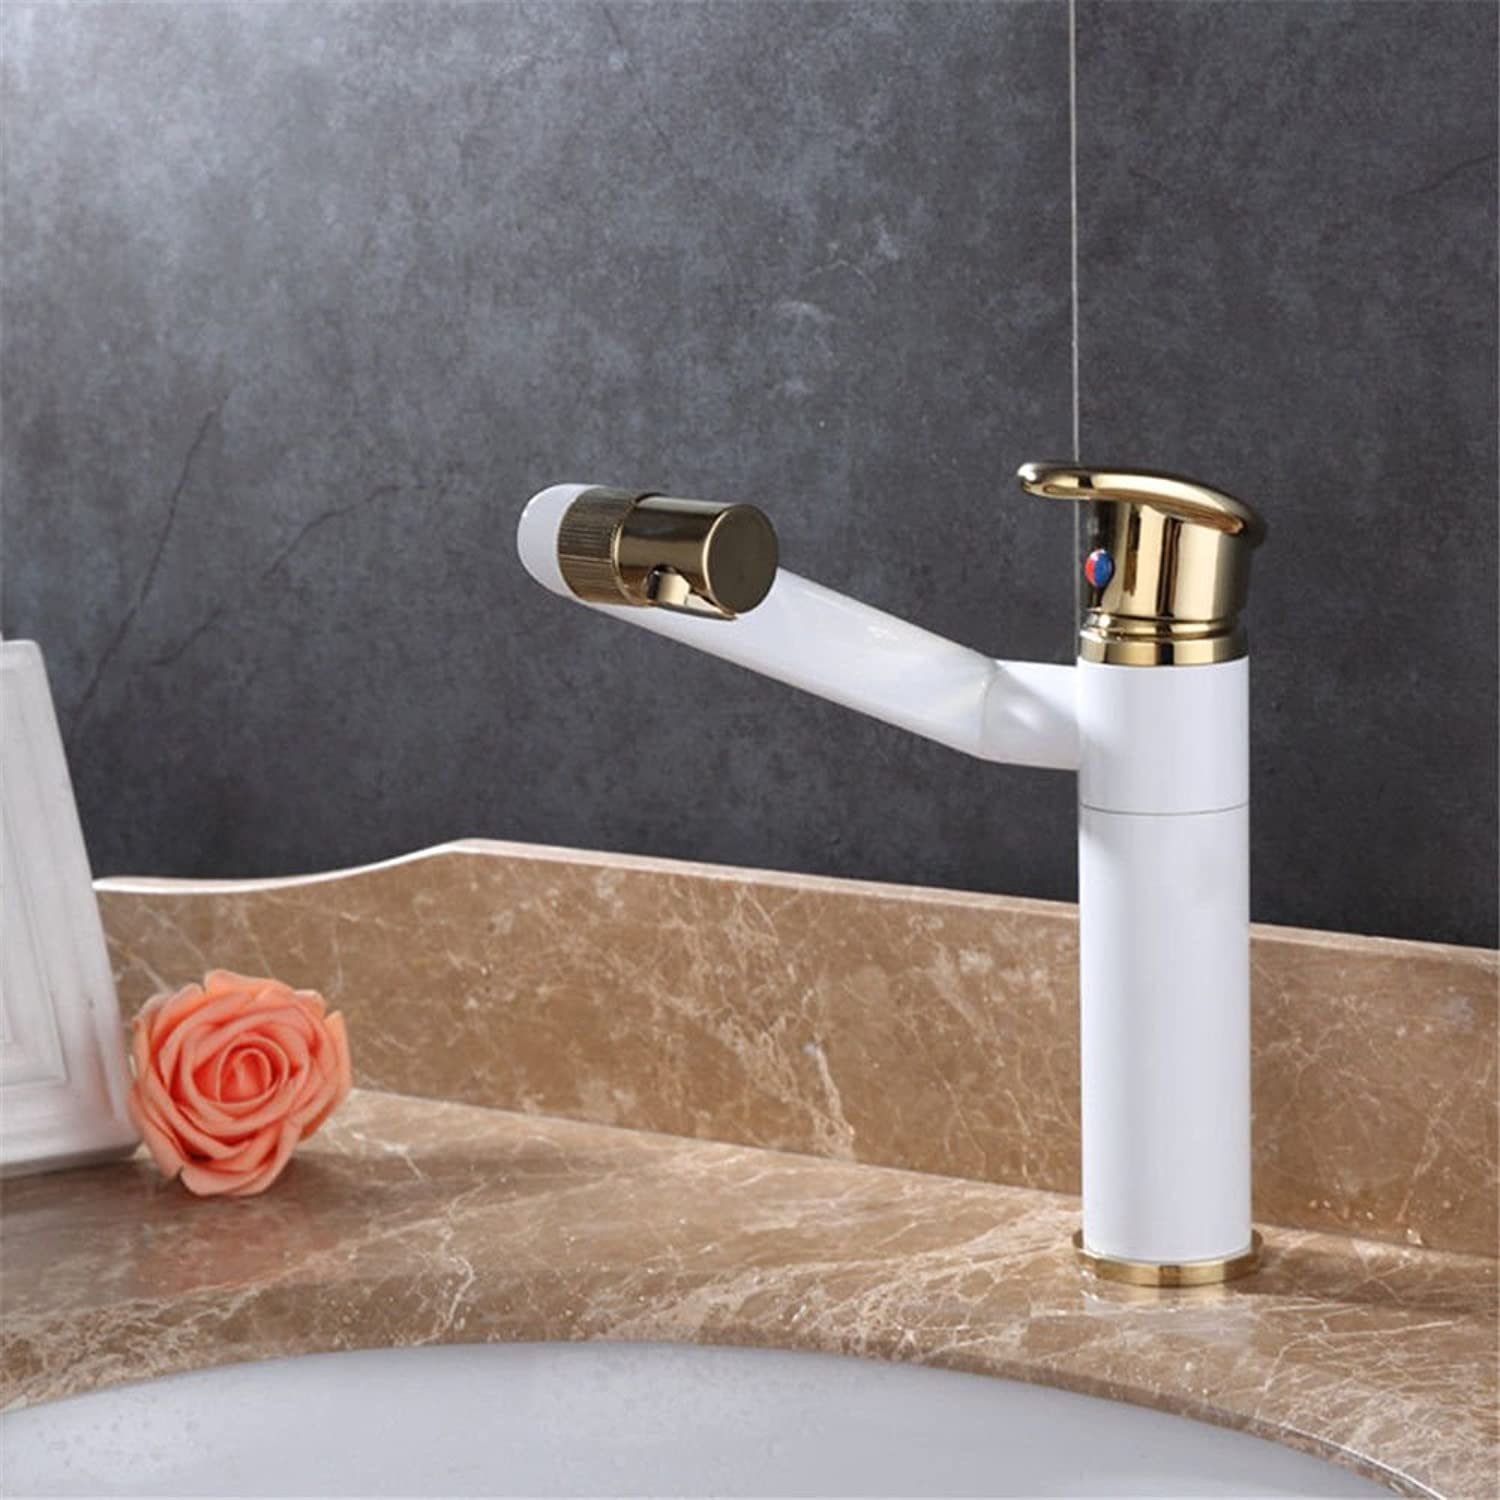 ETERNAL QUALITY Bathroom Sink Basin Tap Brass Mixer Tap Washroom Mixer Faucet The Brass Body Paint faucet single hole basin cold water tap basin vanity area with hand was